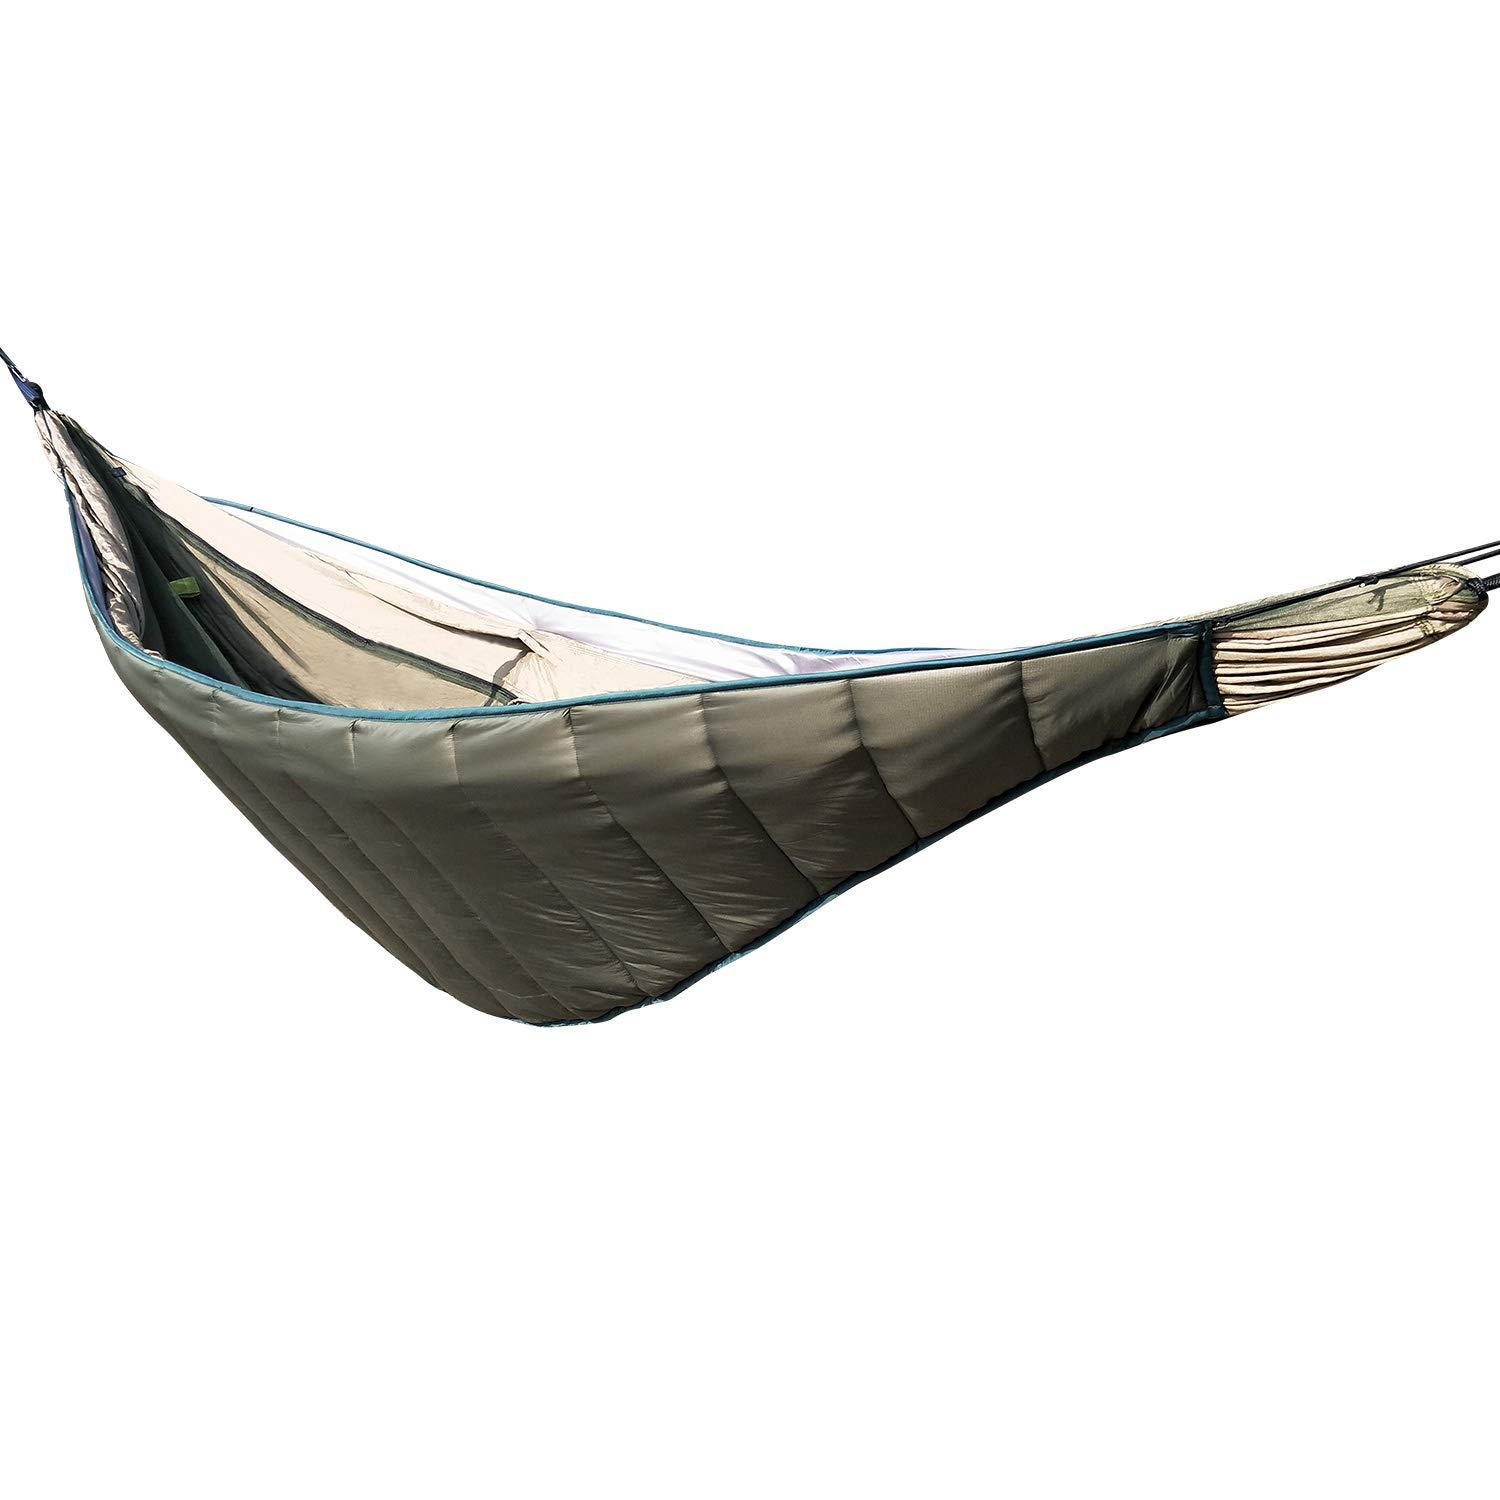 REDCAMP Hammock Underquilt Lightweight, Water Repellency 3 Seasons Warm Hammock Sleeping Bag with Compression Sack Packable for Outdoor Camping Hiking, Green